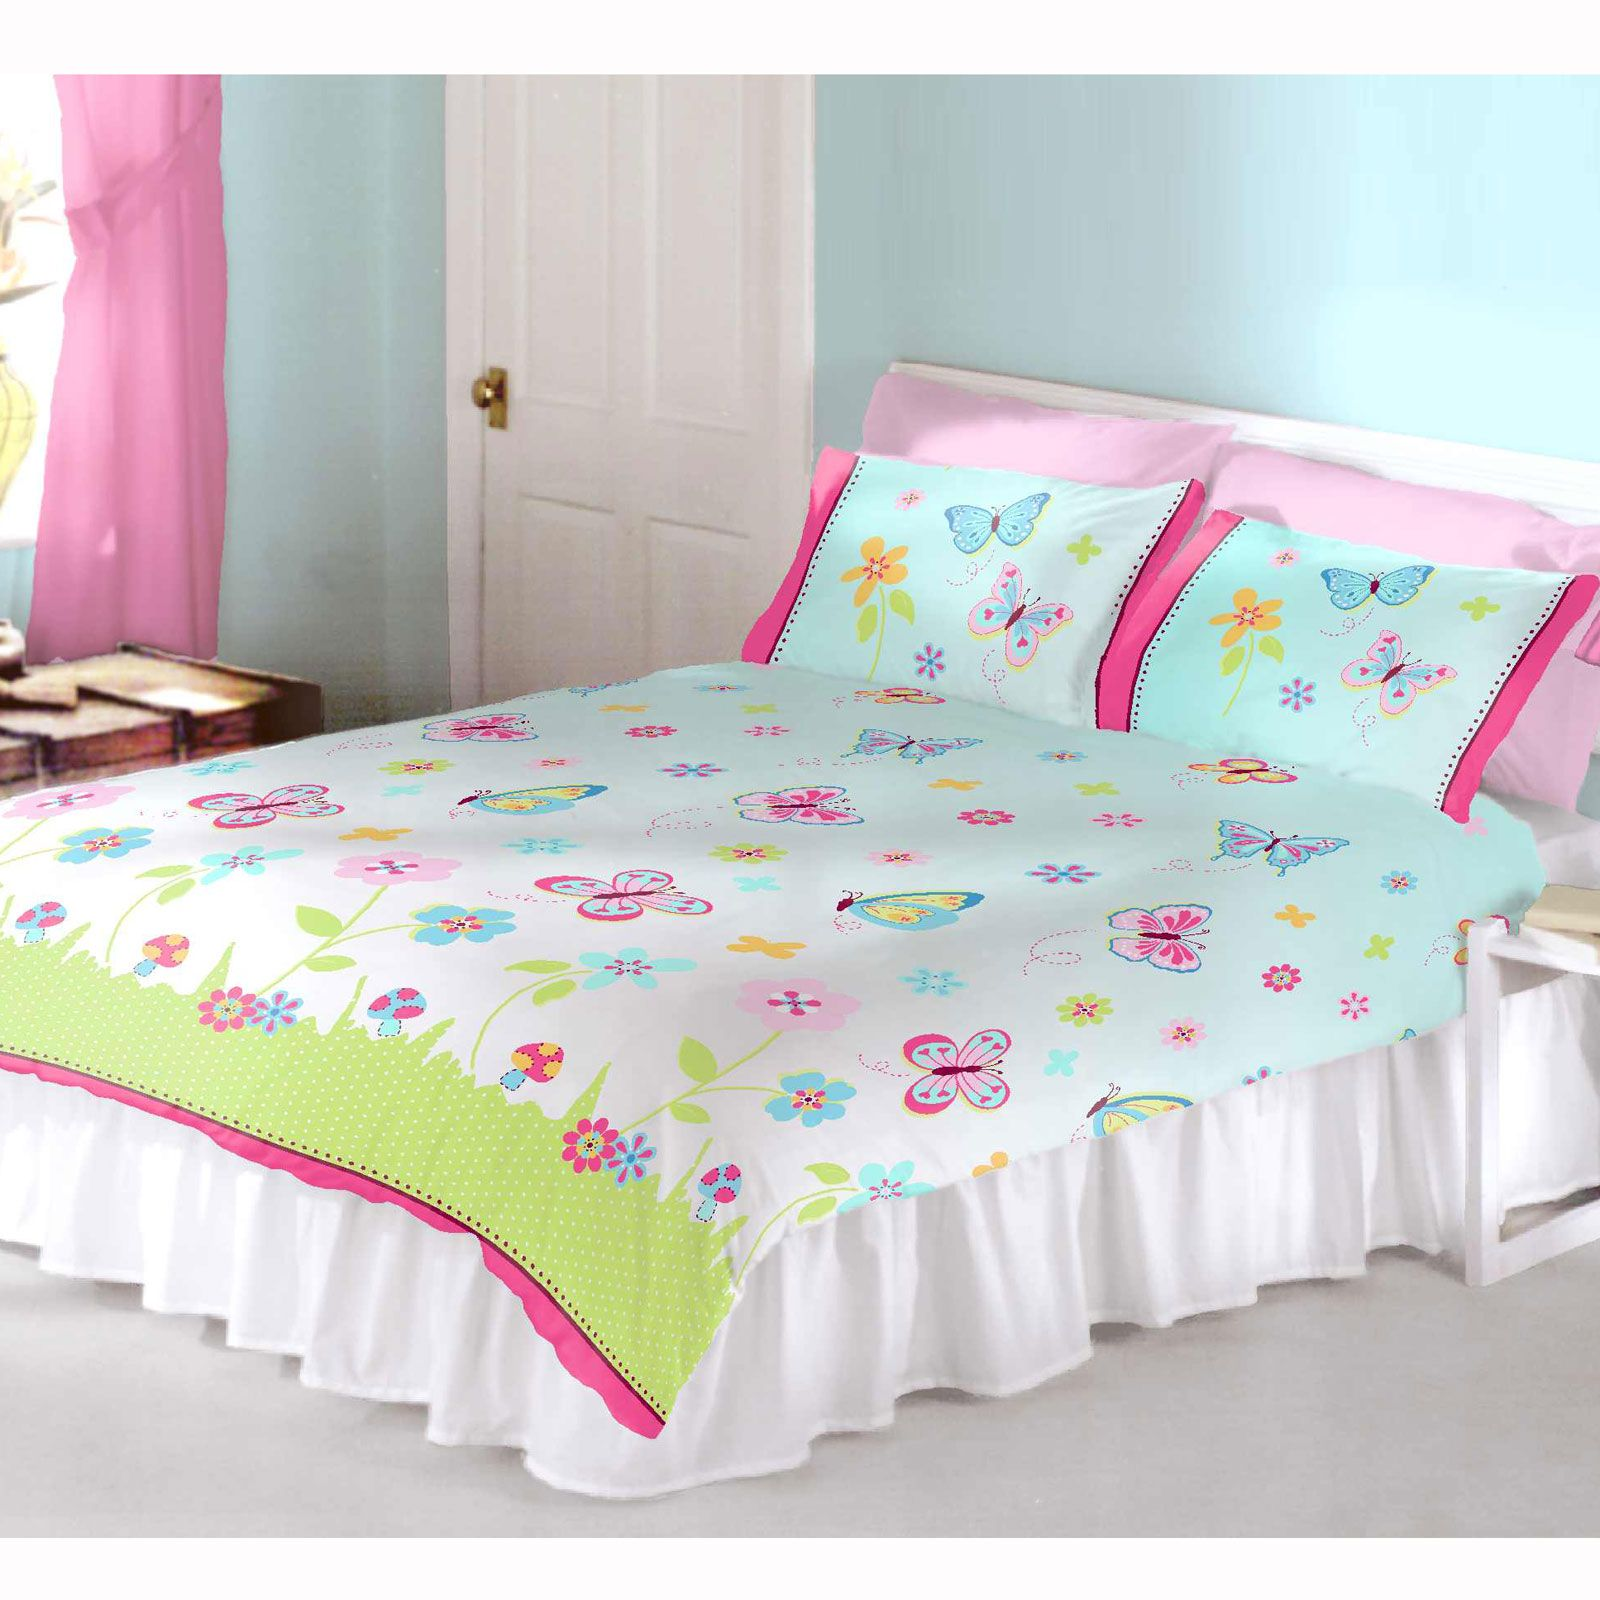 Double Doona Covers Kids Double Bedding Childrens Double Duvet Cover Sets